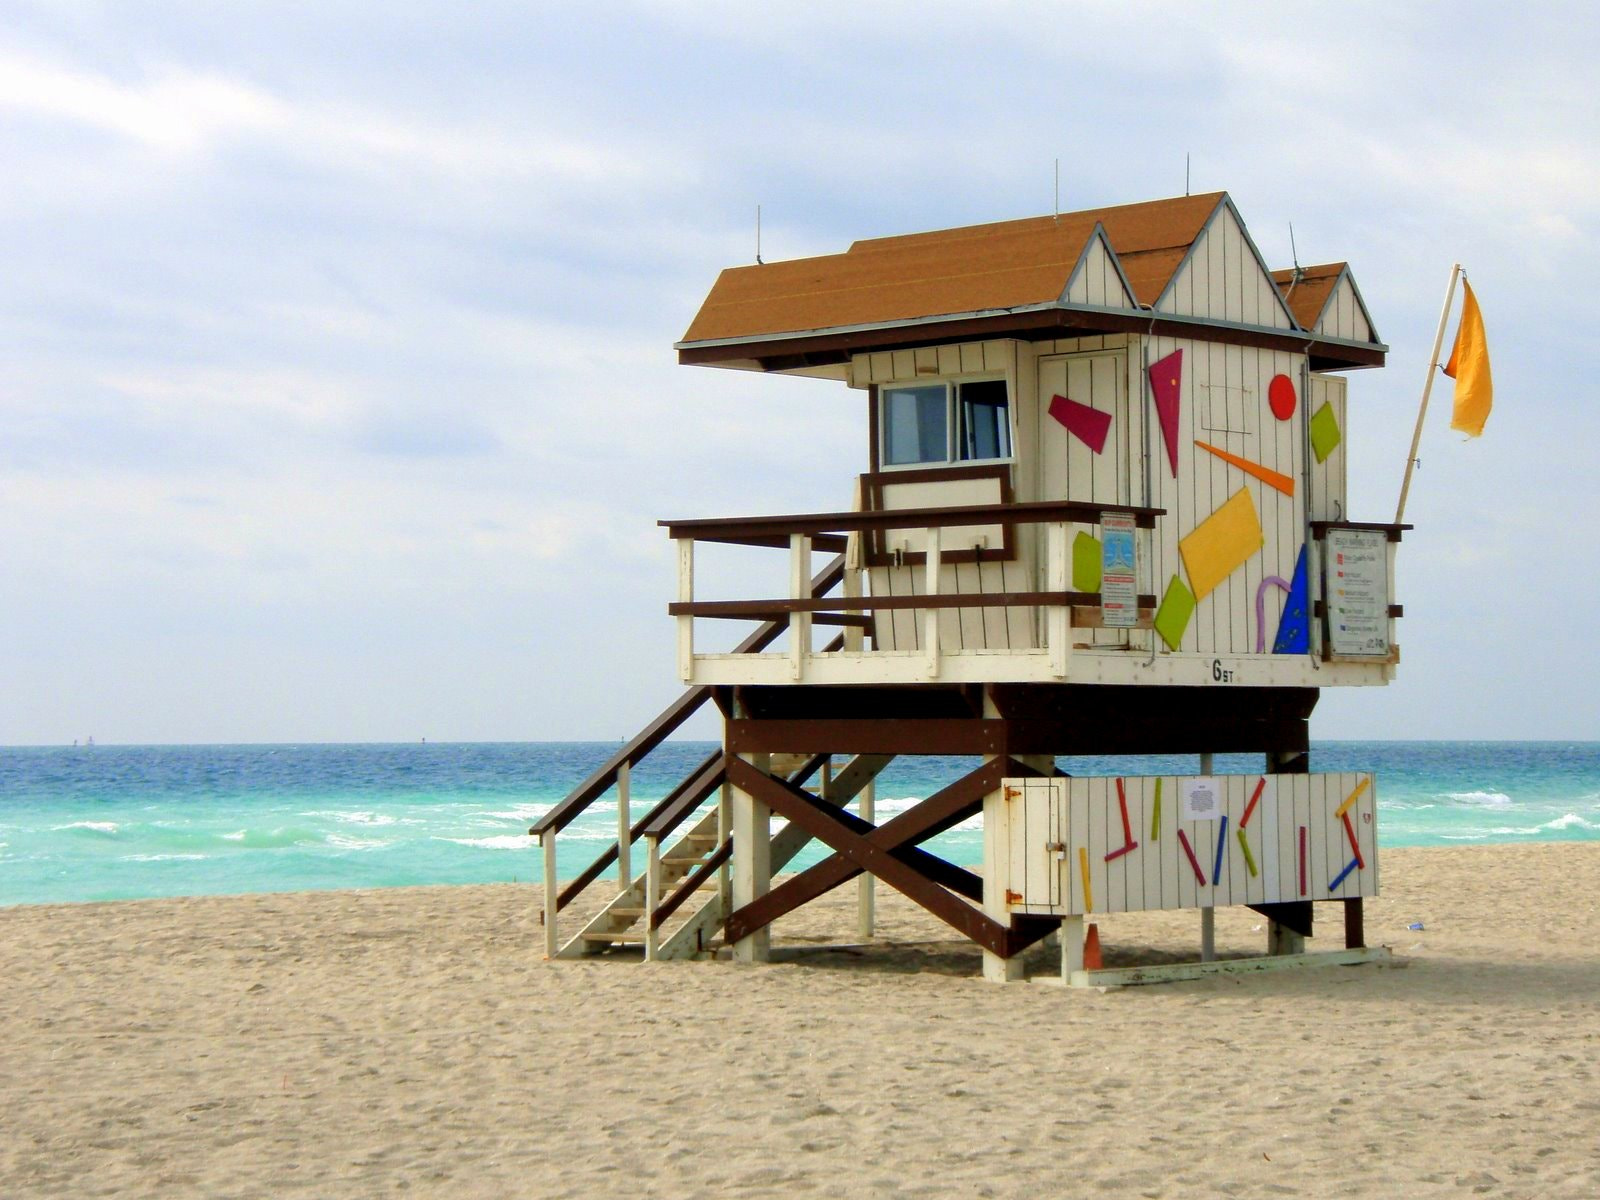 Photograph Lifeguard Hut by Marty Reep on 500px